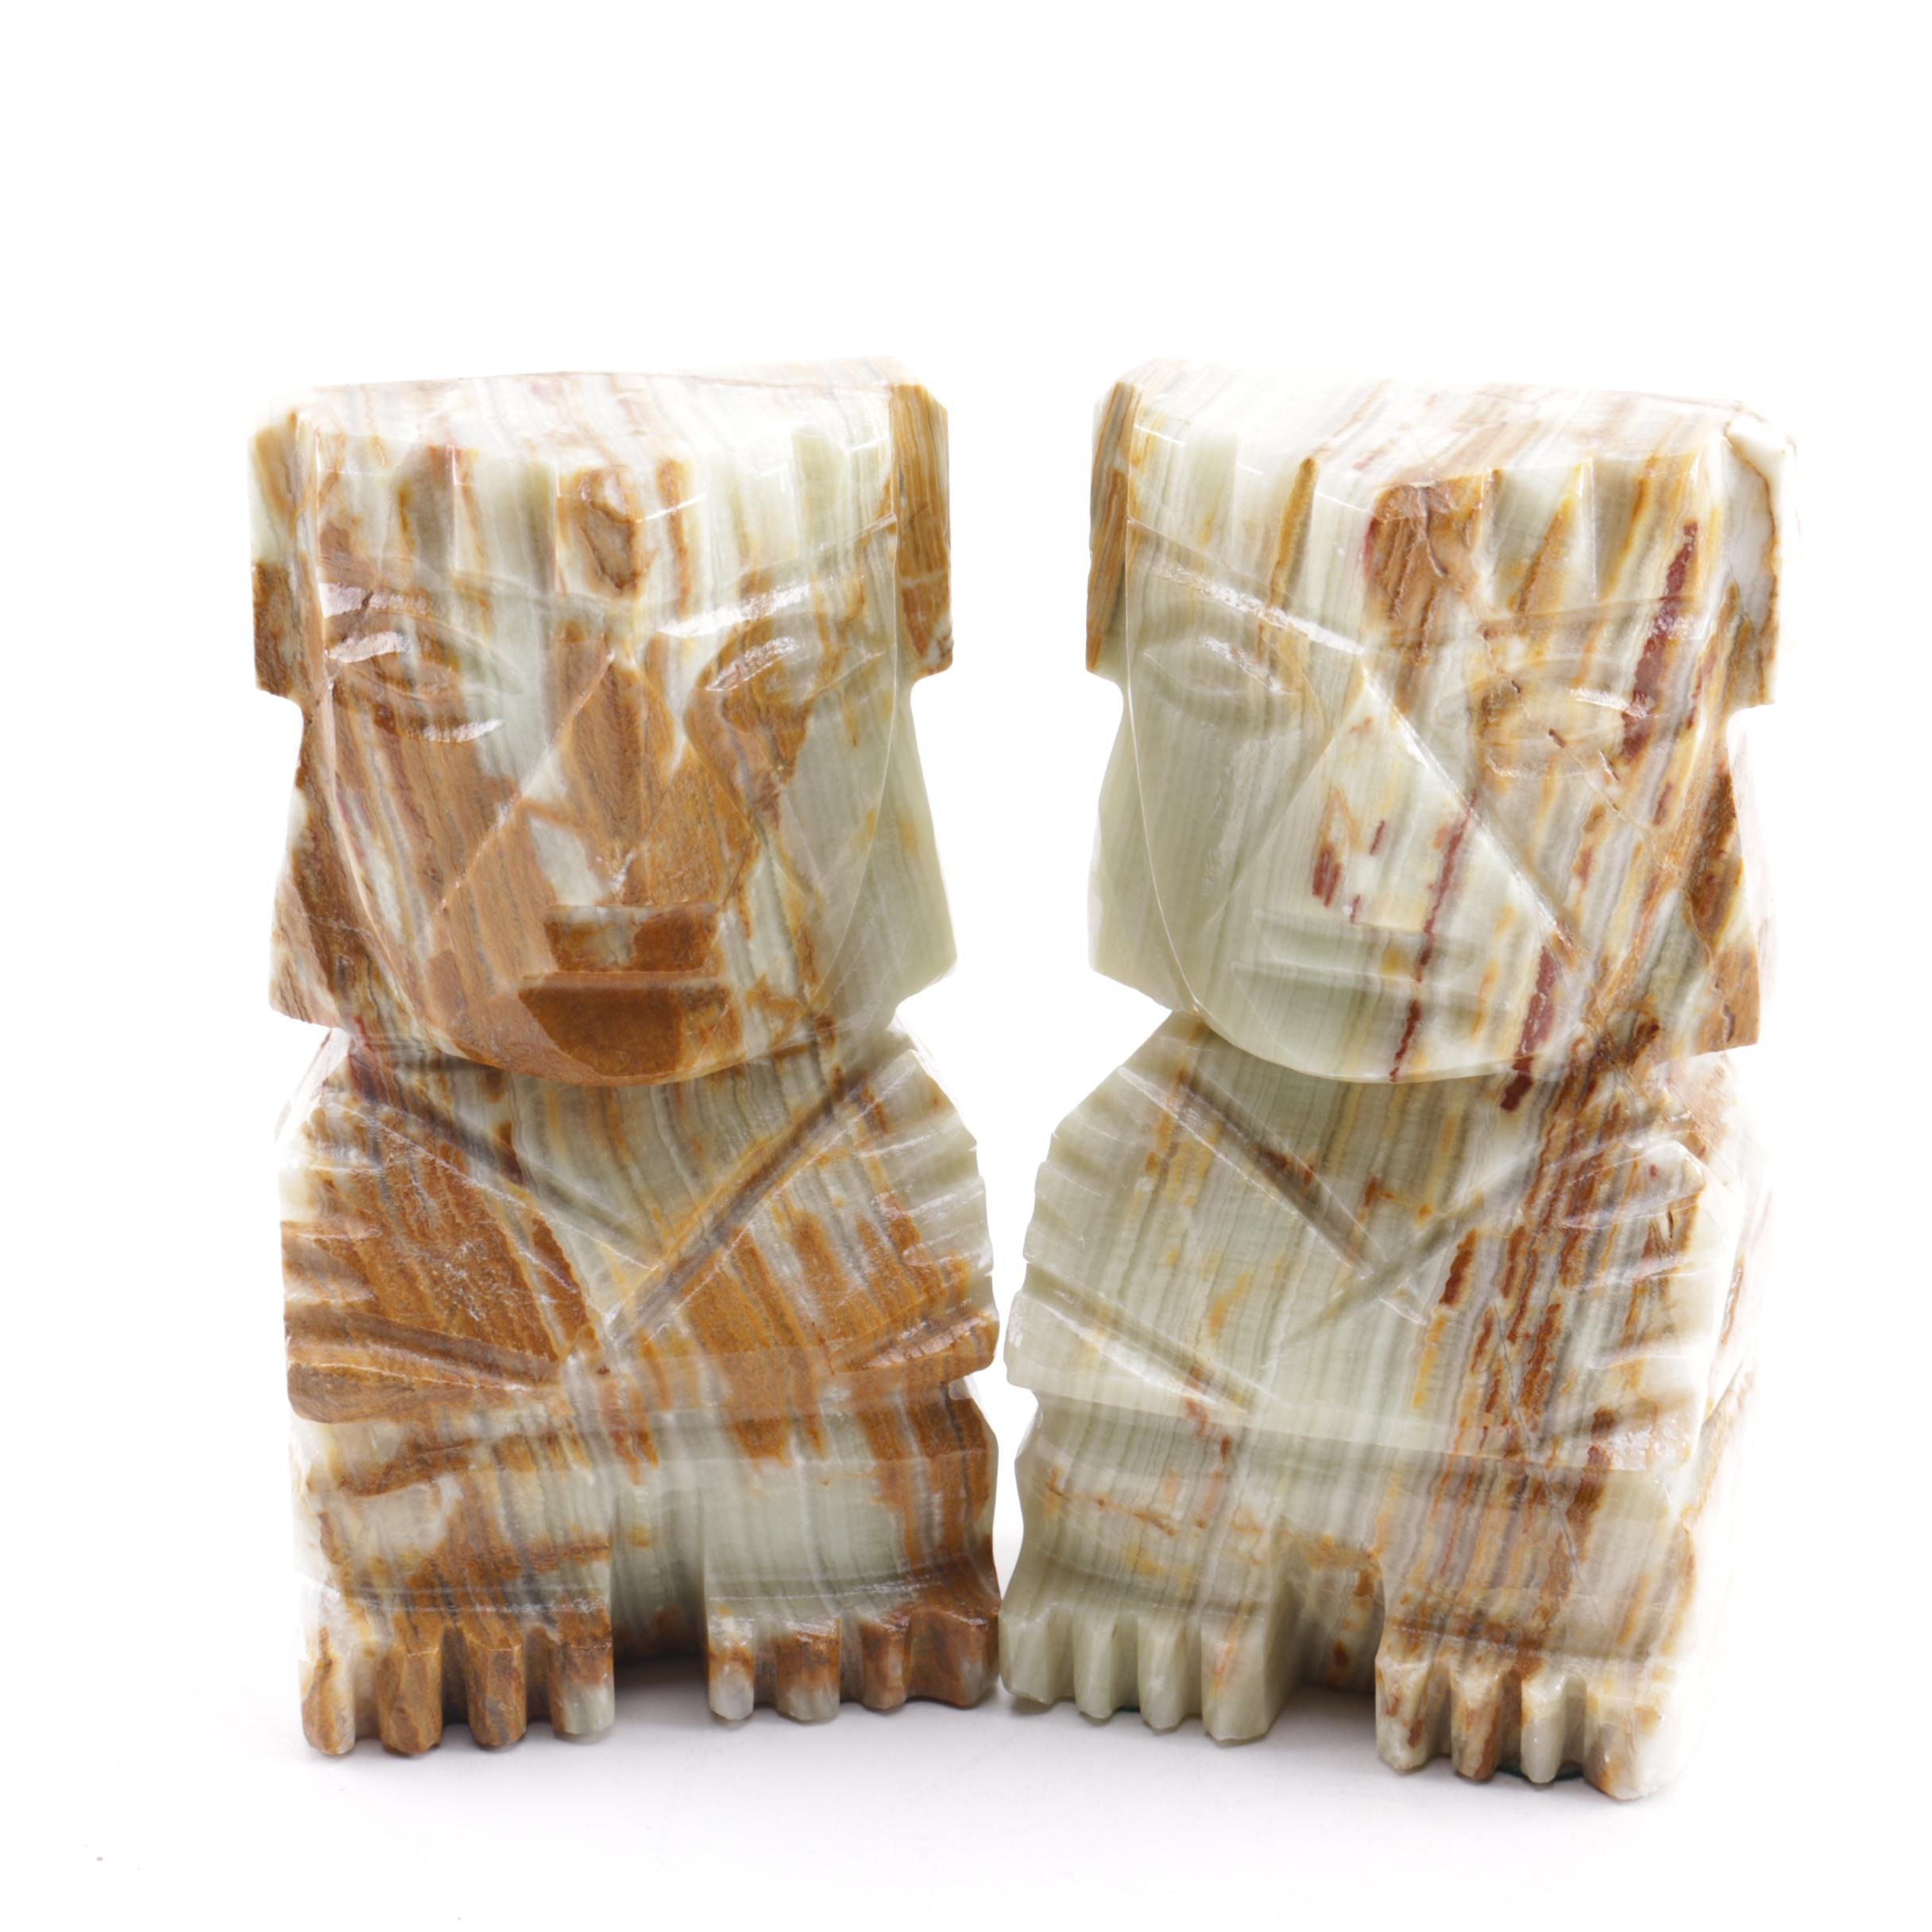 Calcite Aztec Inspired Bookends